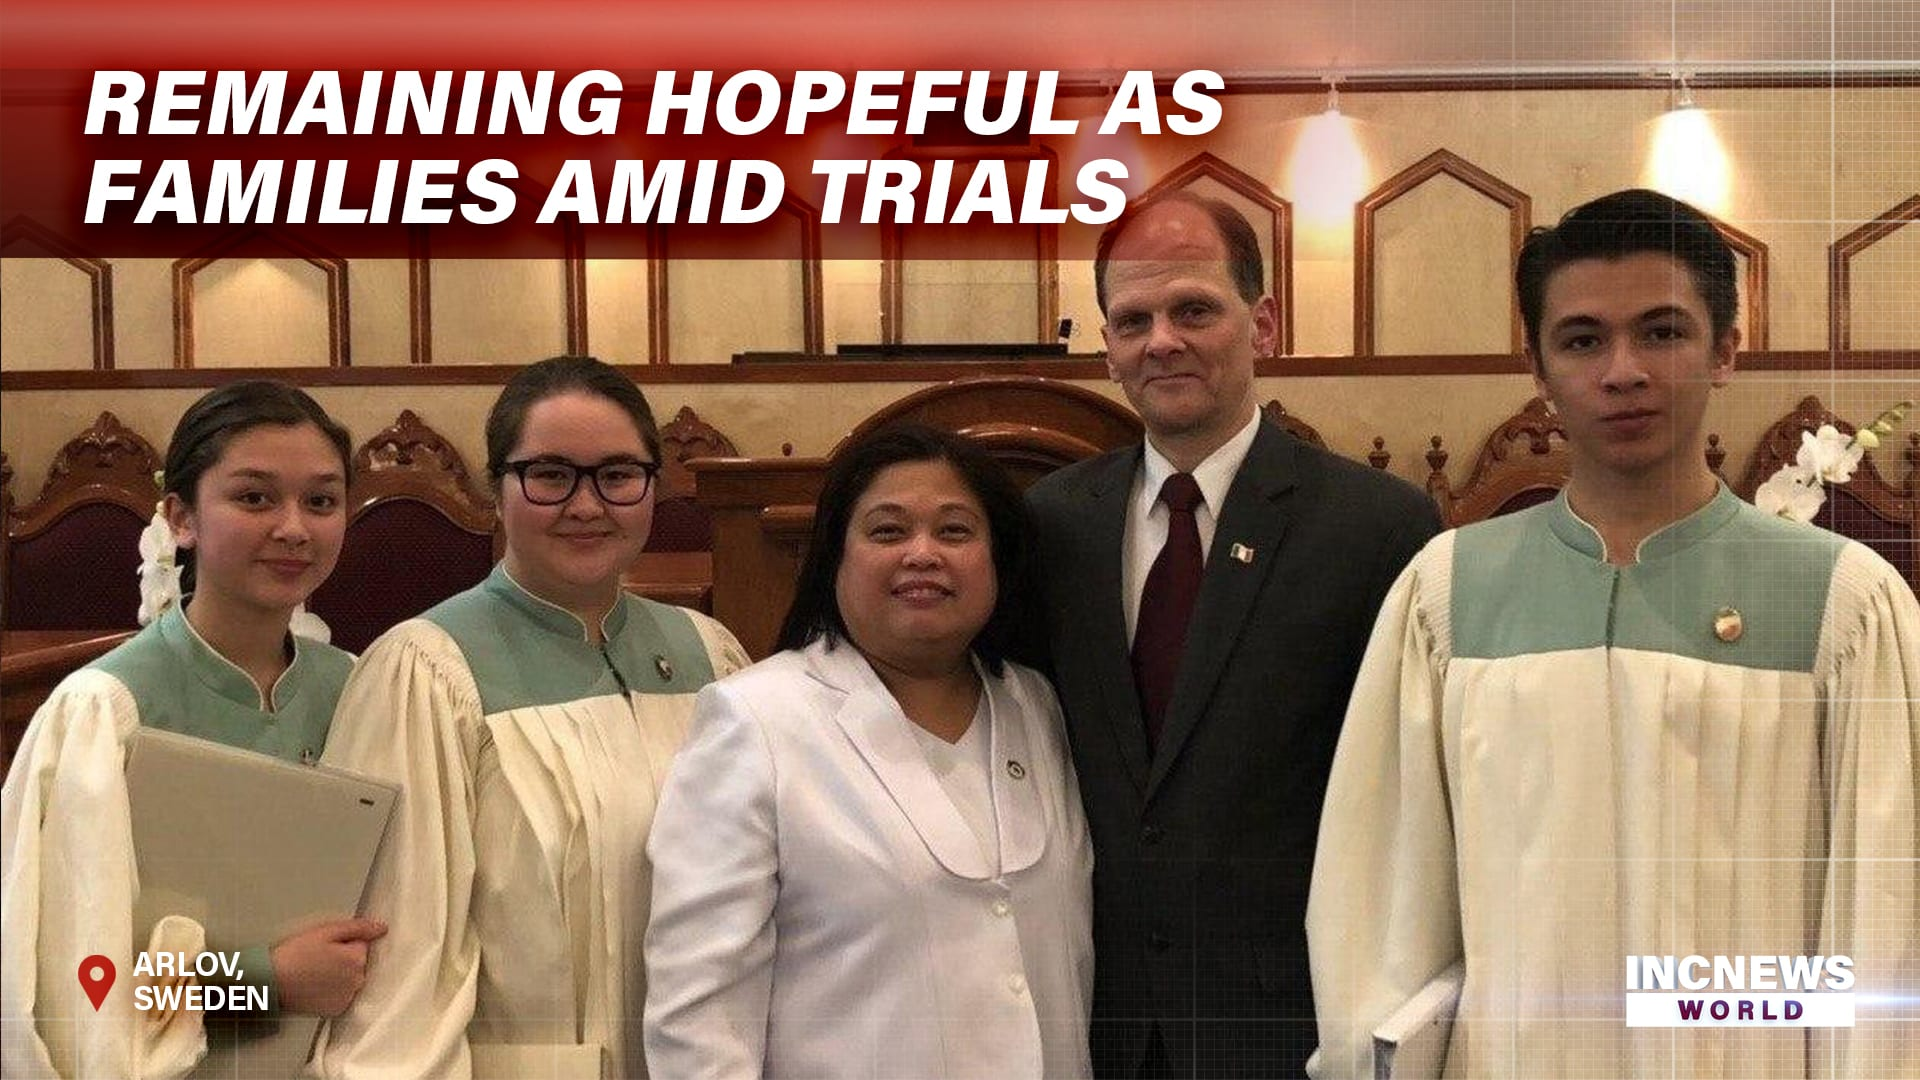 Remaining Hopeful as Families Amid Trials